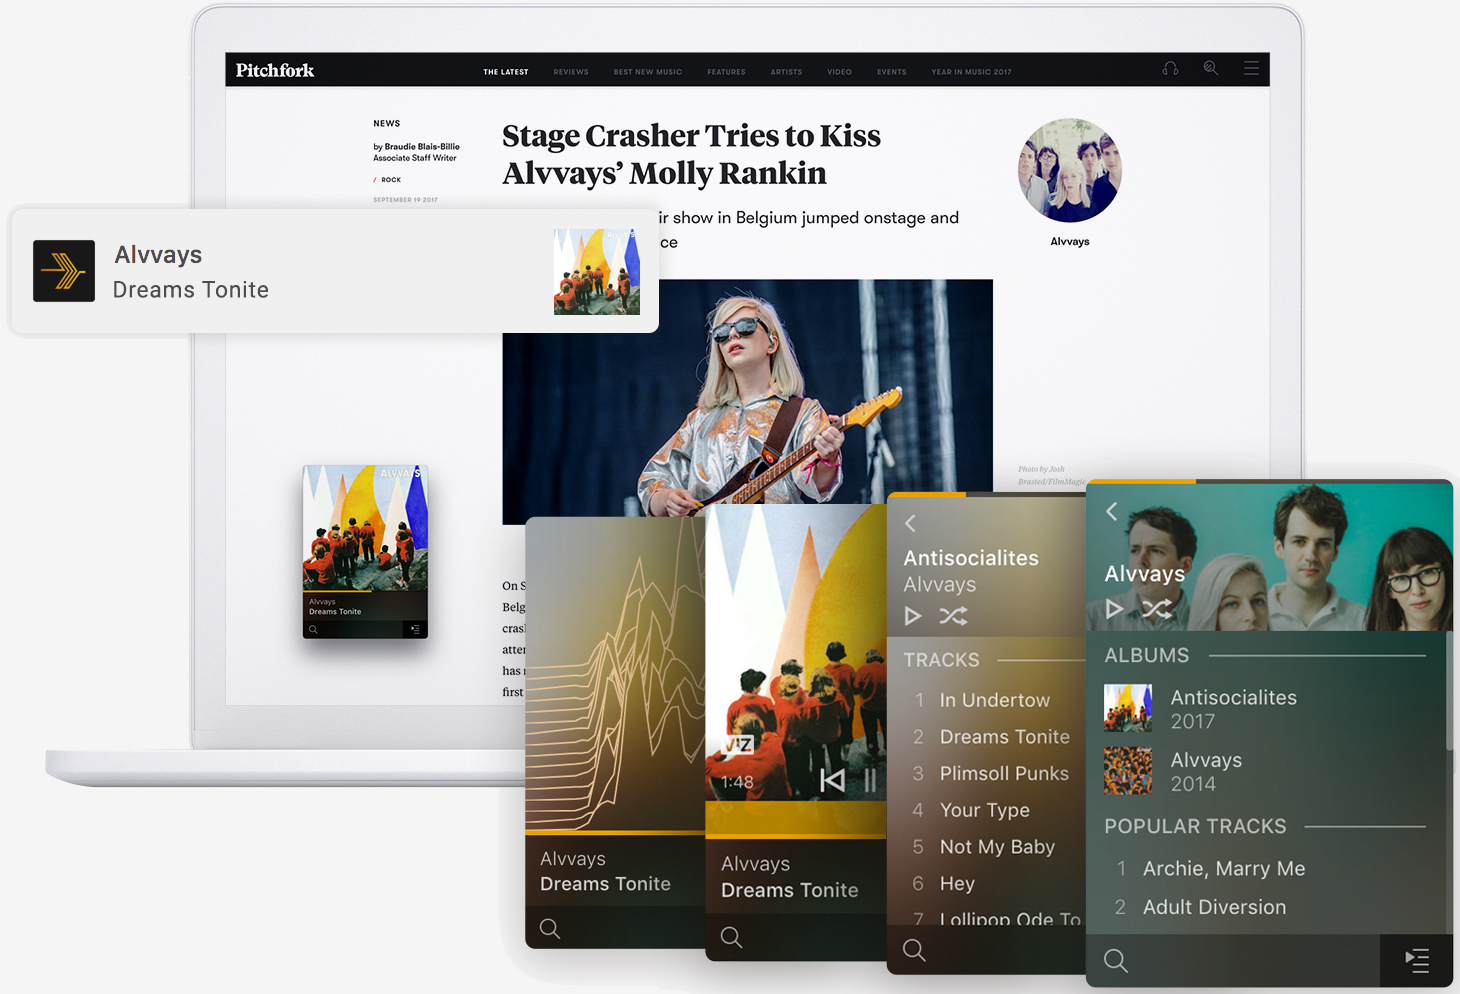 Plexamp is a Winamp-inspired standalone music player for macOS and Windows